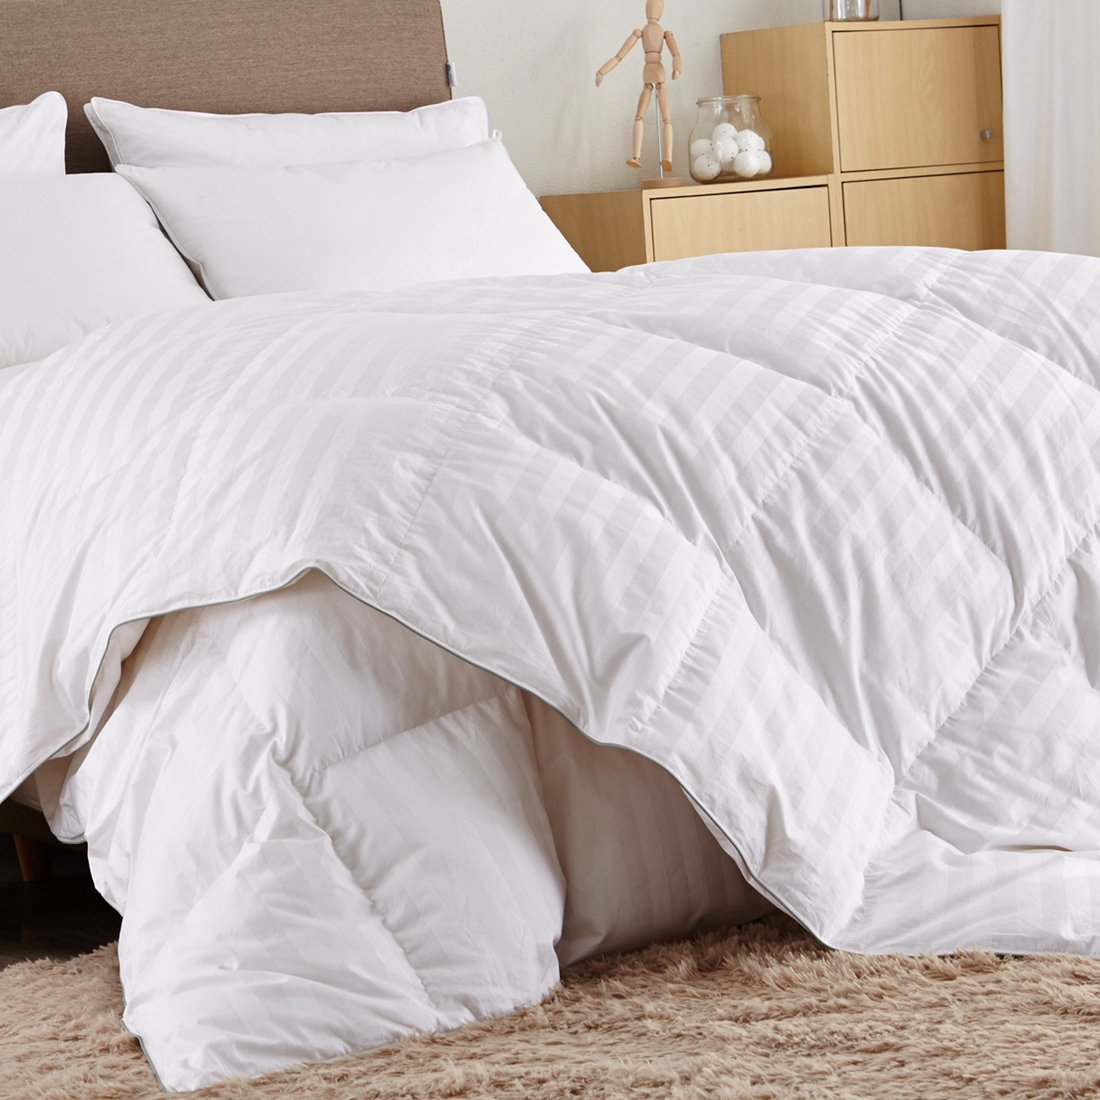 amazoncom puredown comforter cotton shell 500tcstripe white fullqueen home u0026 kitchen